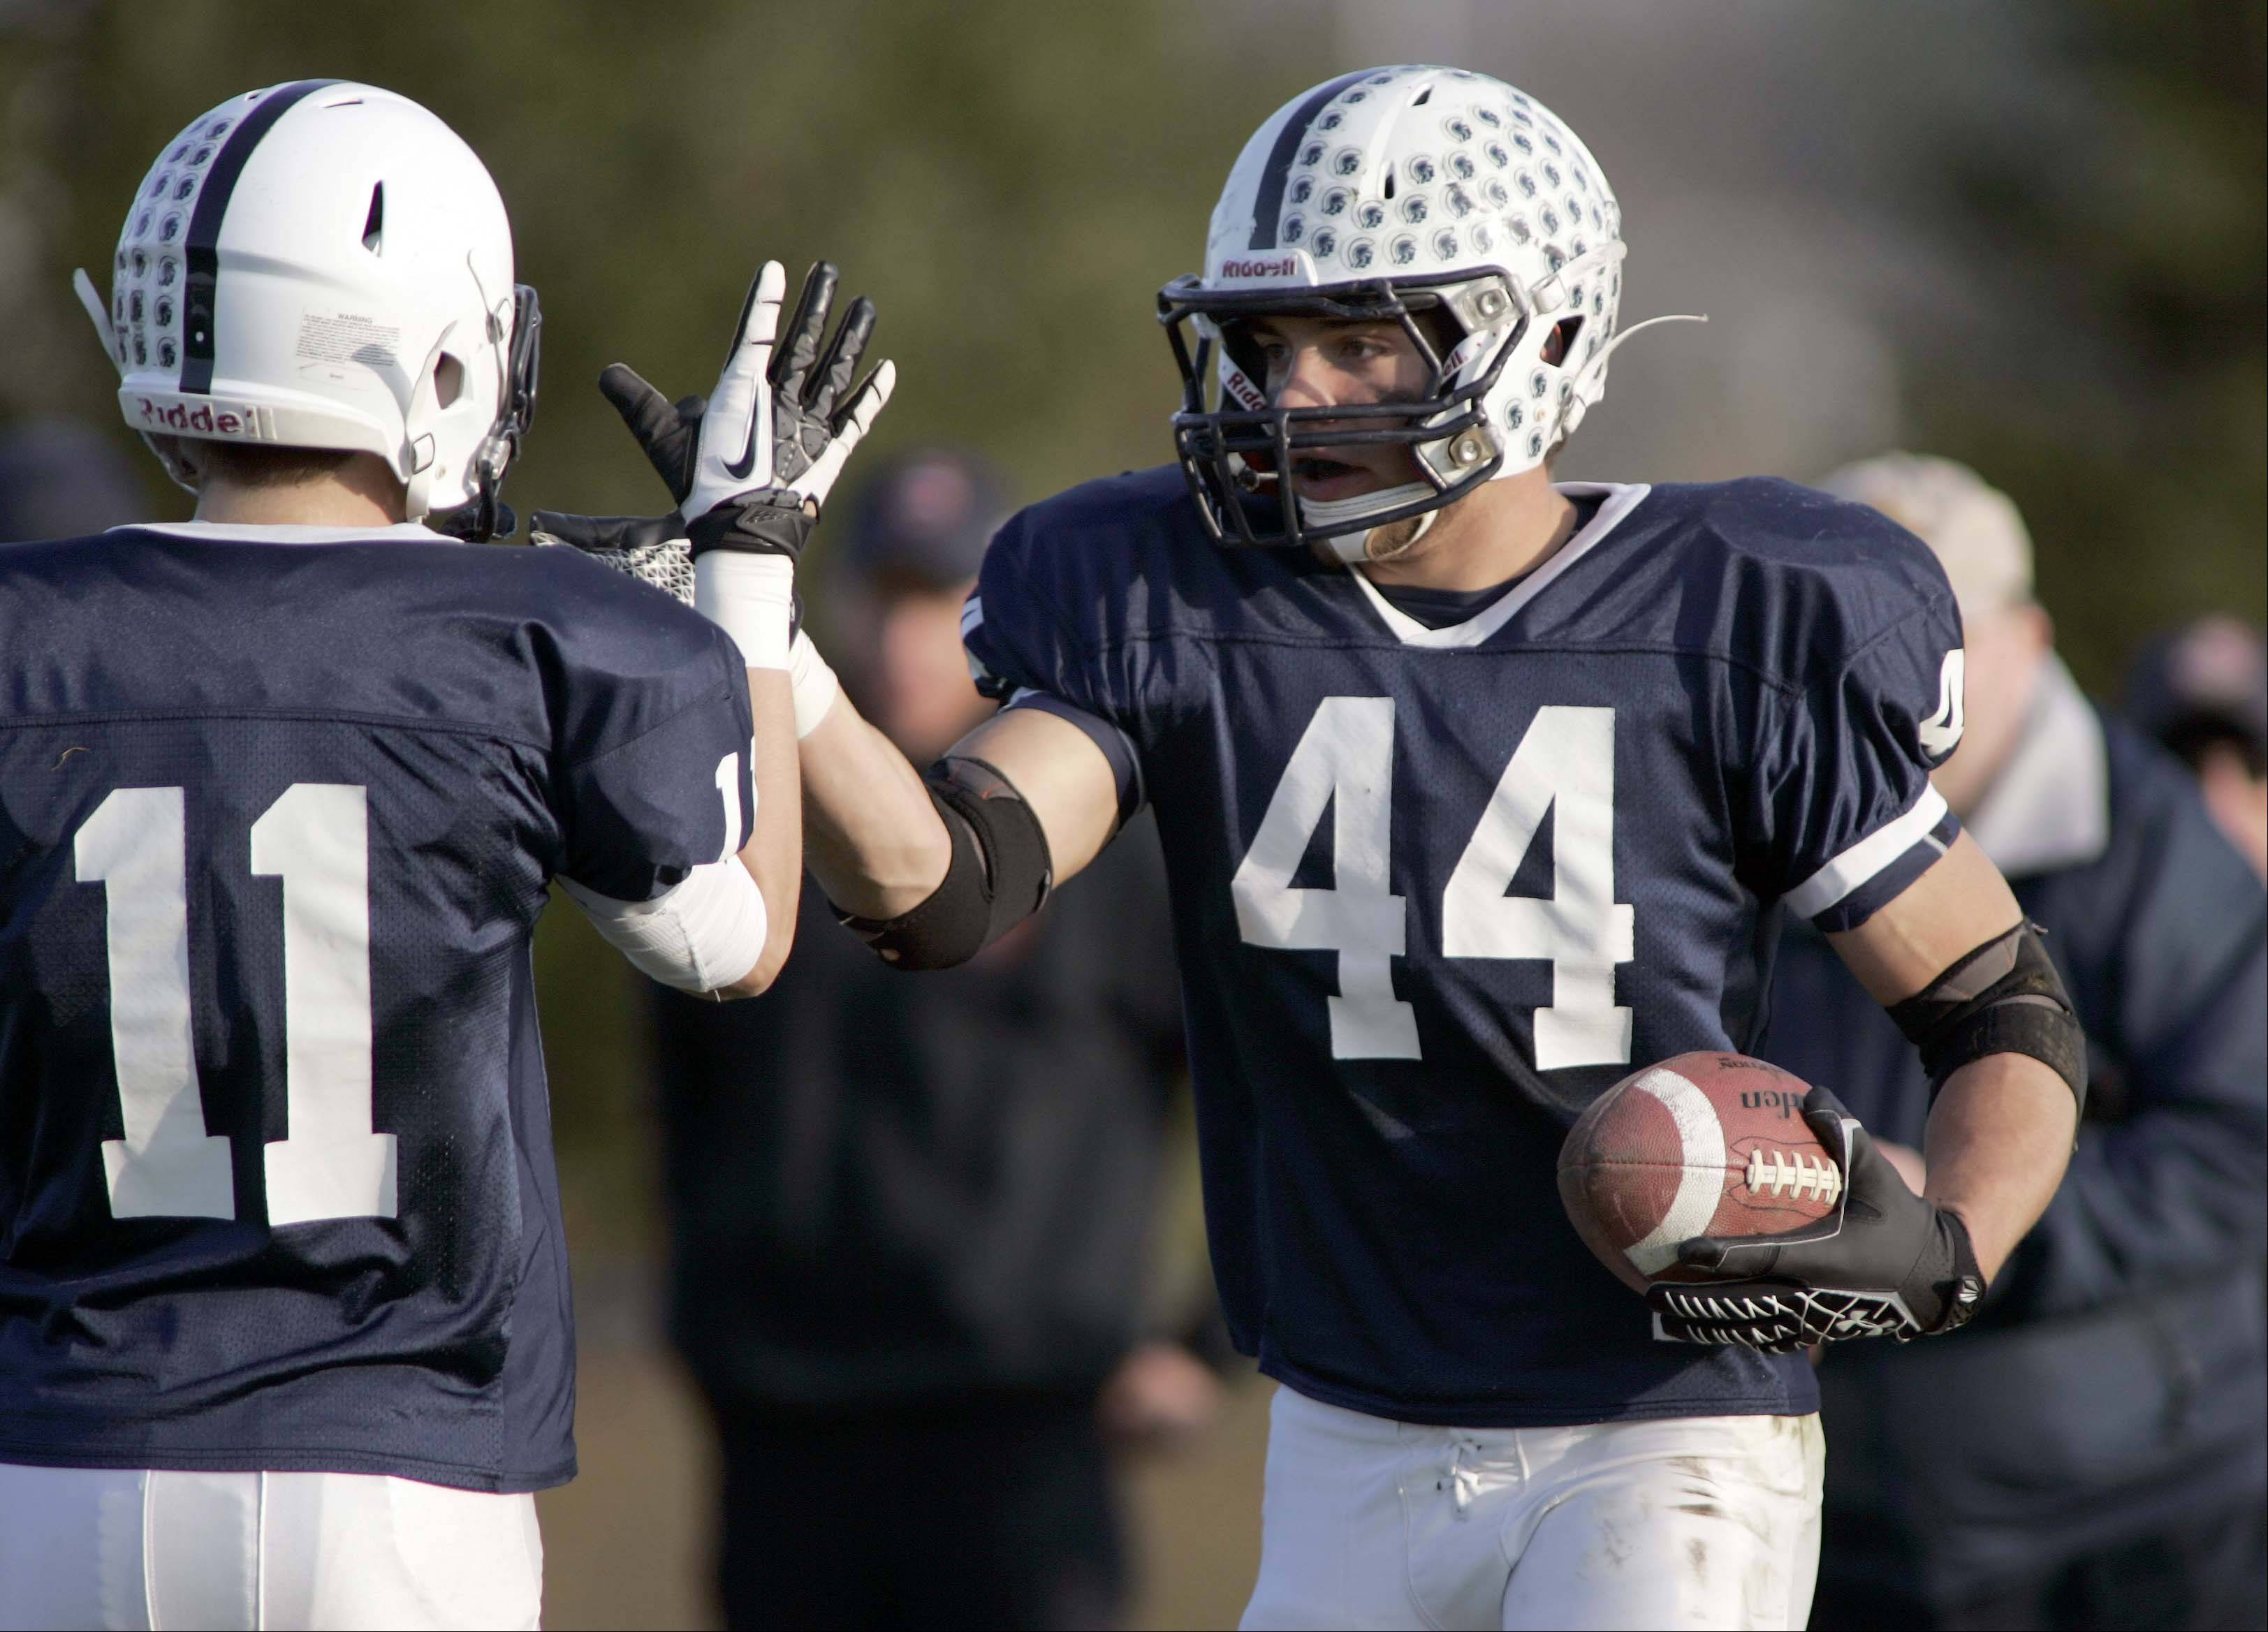 Cary-Grove's Kyle Norberg (44) is greeted by Patrick Snell after scoring one of his touchdowns during Rockford Auburn at Cary-Grove in IHSA Class 6A playoff Football Saturday October 27, 2012.